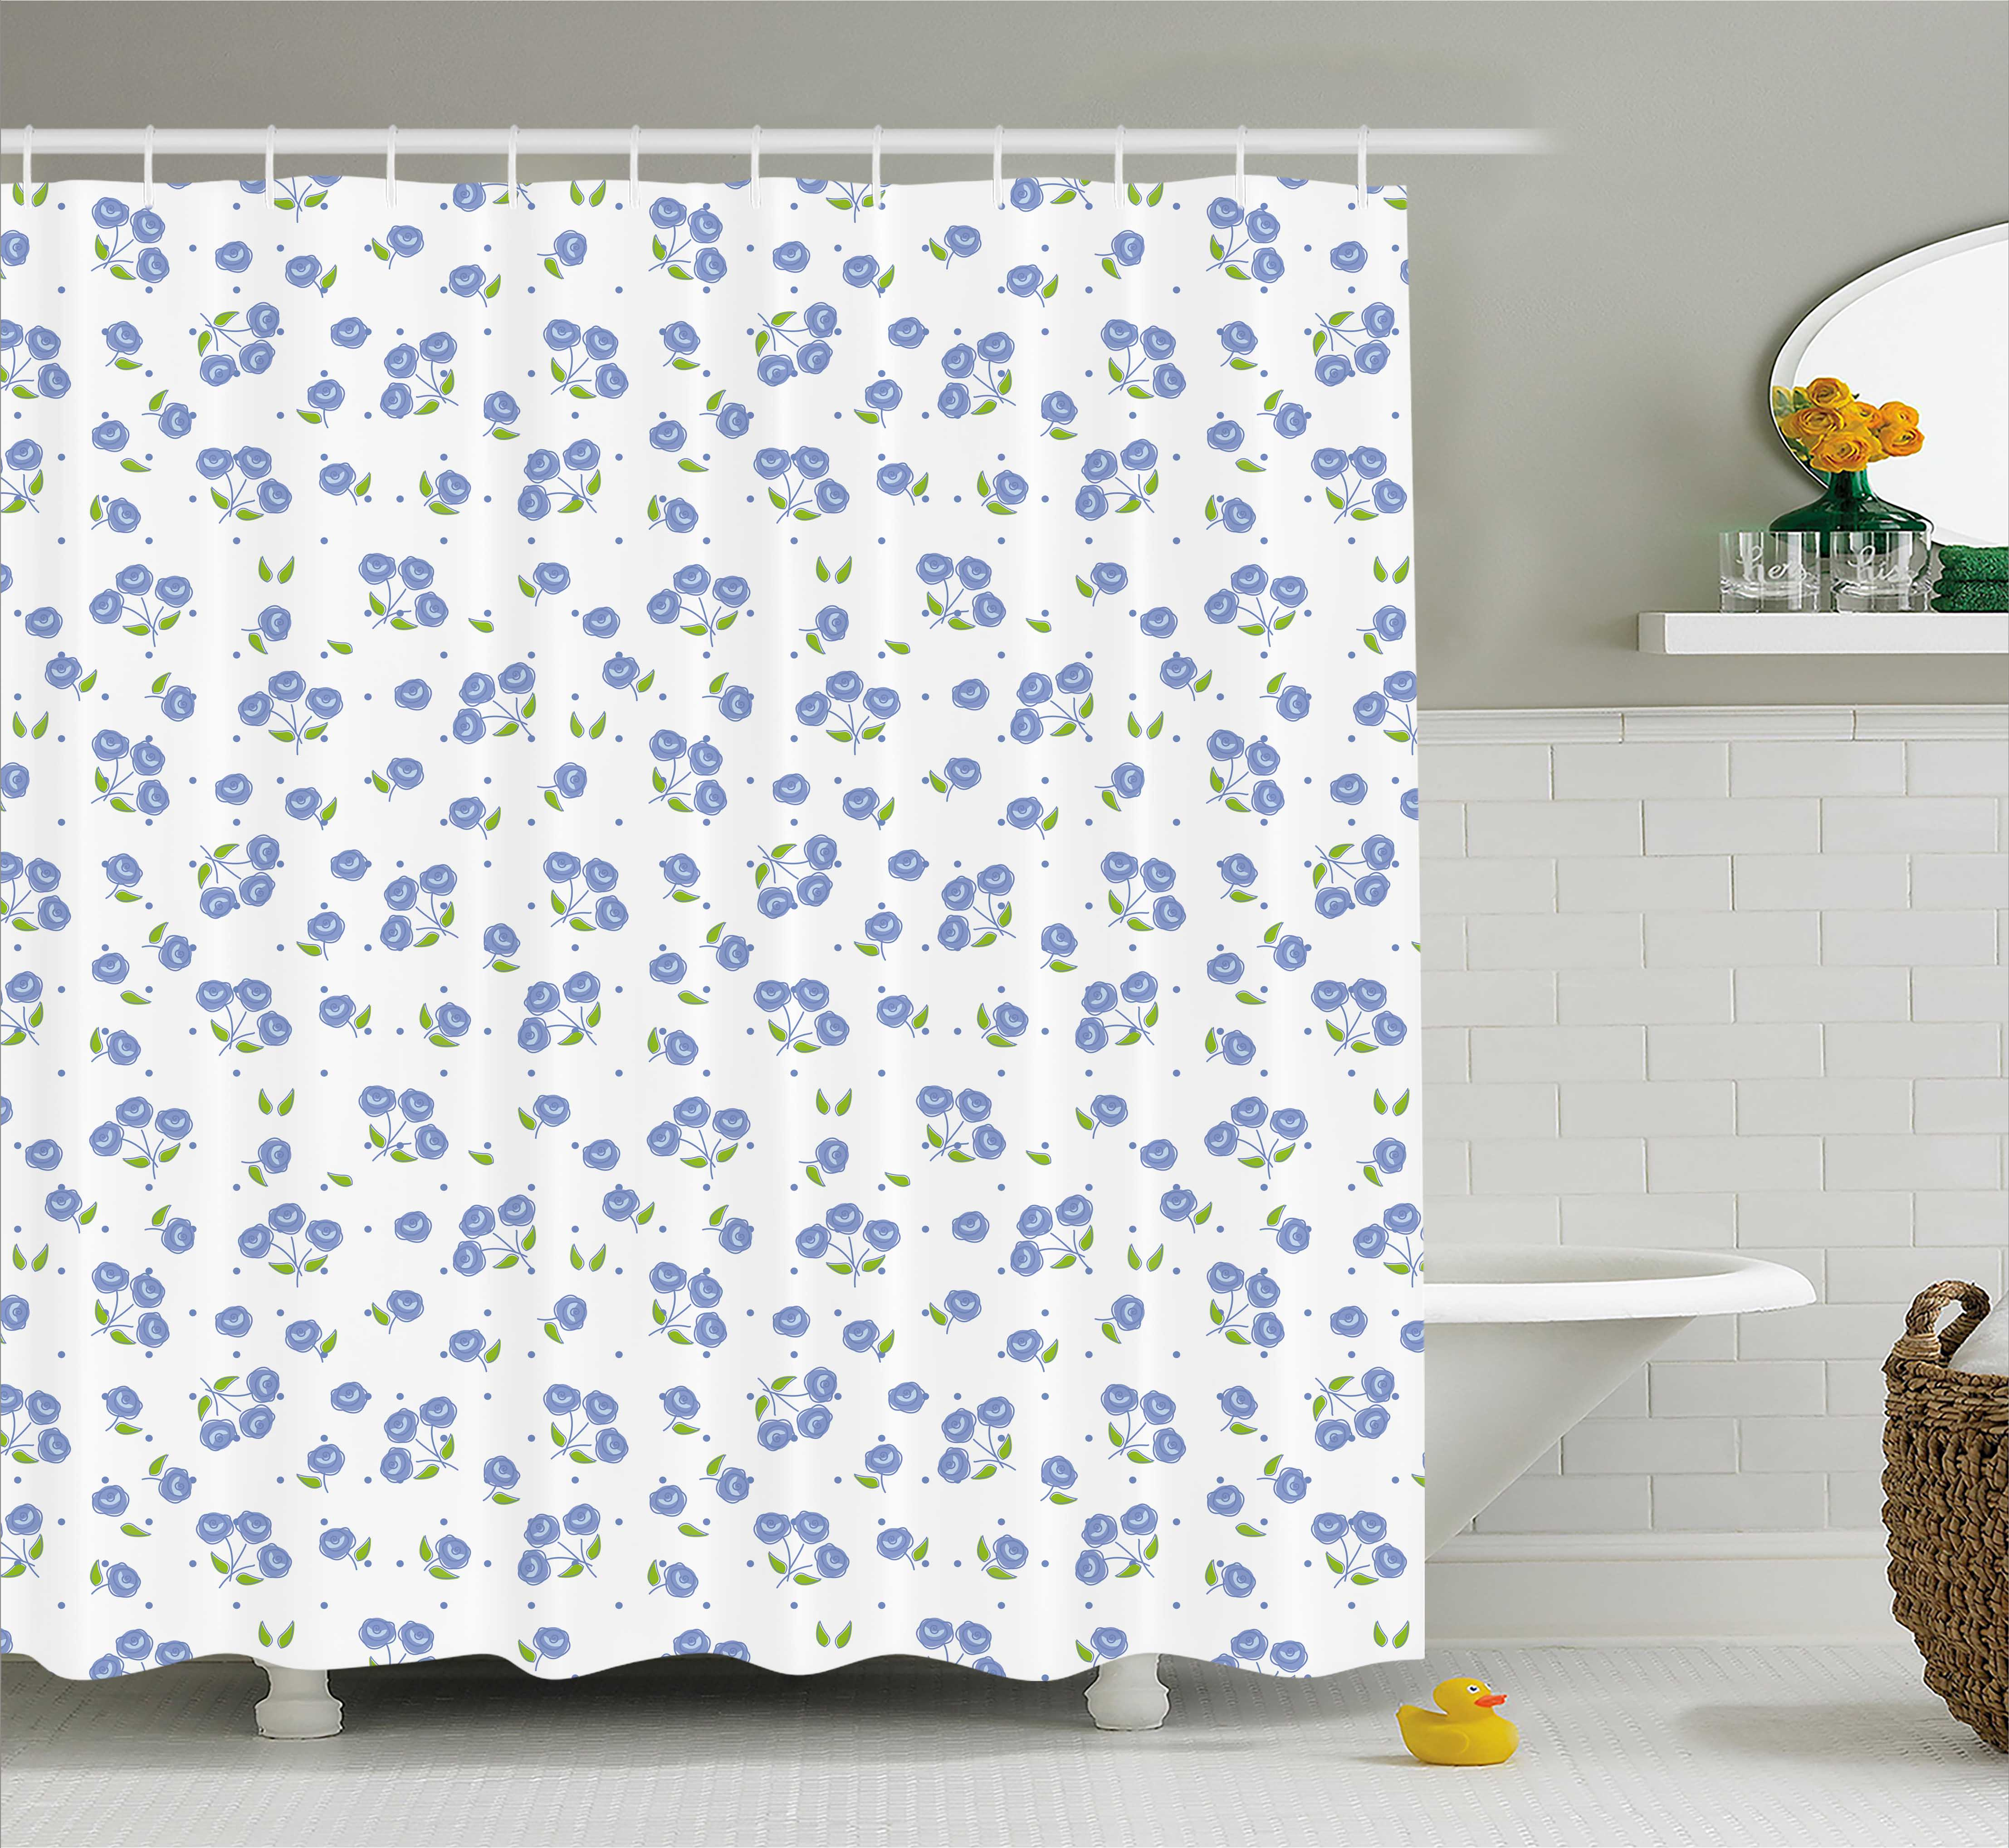 Floral Shower Curtain, Vintage Rose Flowers Bouquets Spring Season Theme  Dots Green Leaves, Fabric